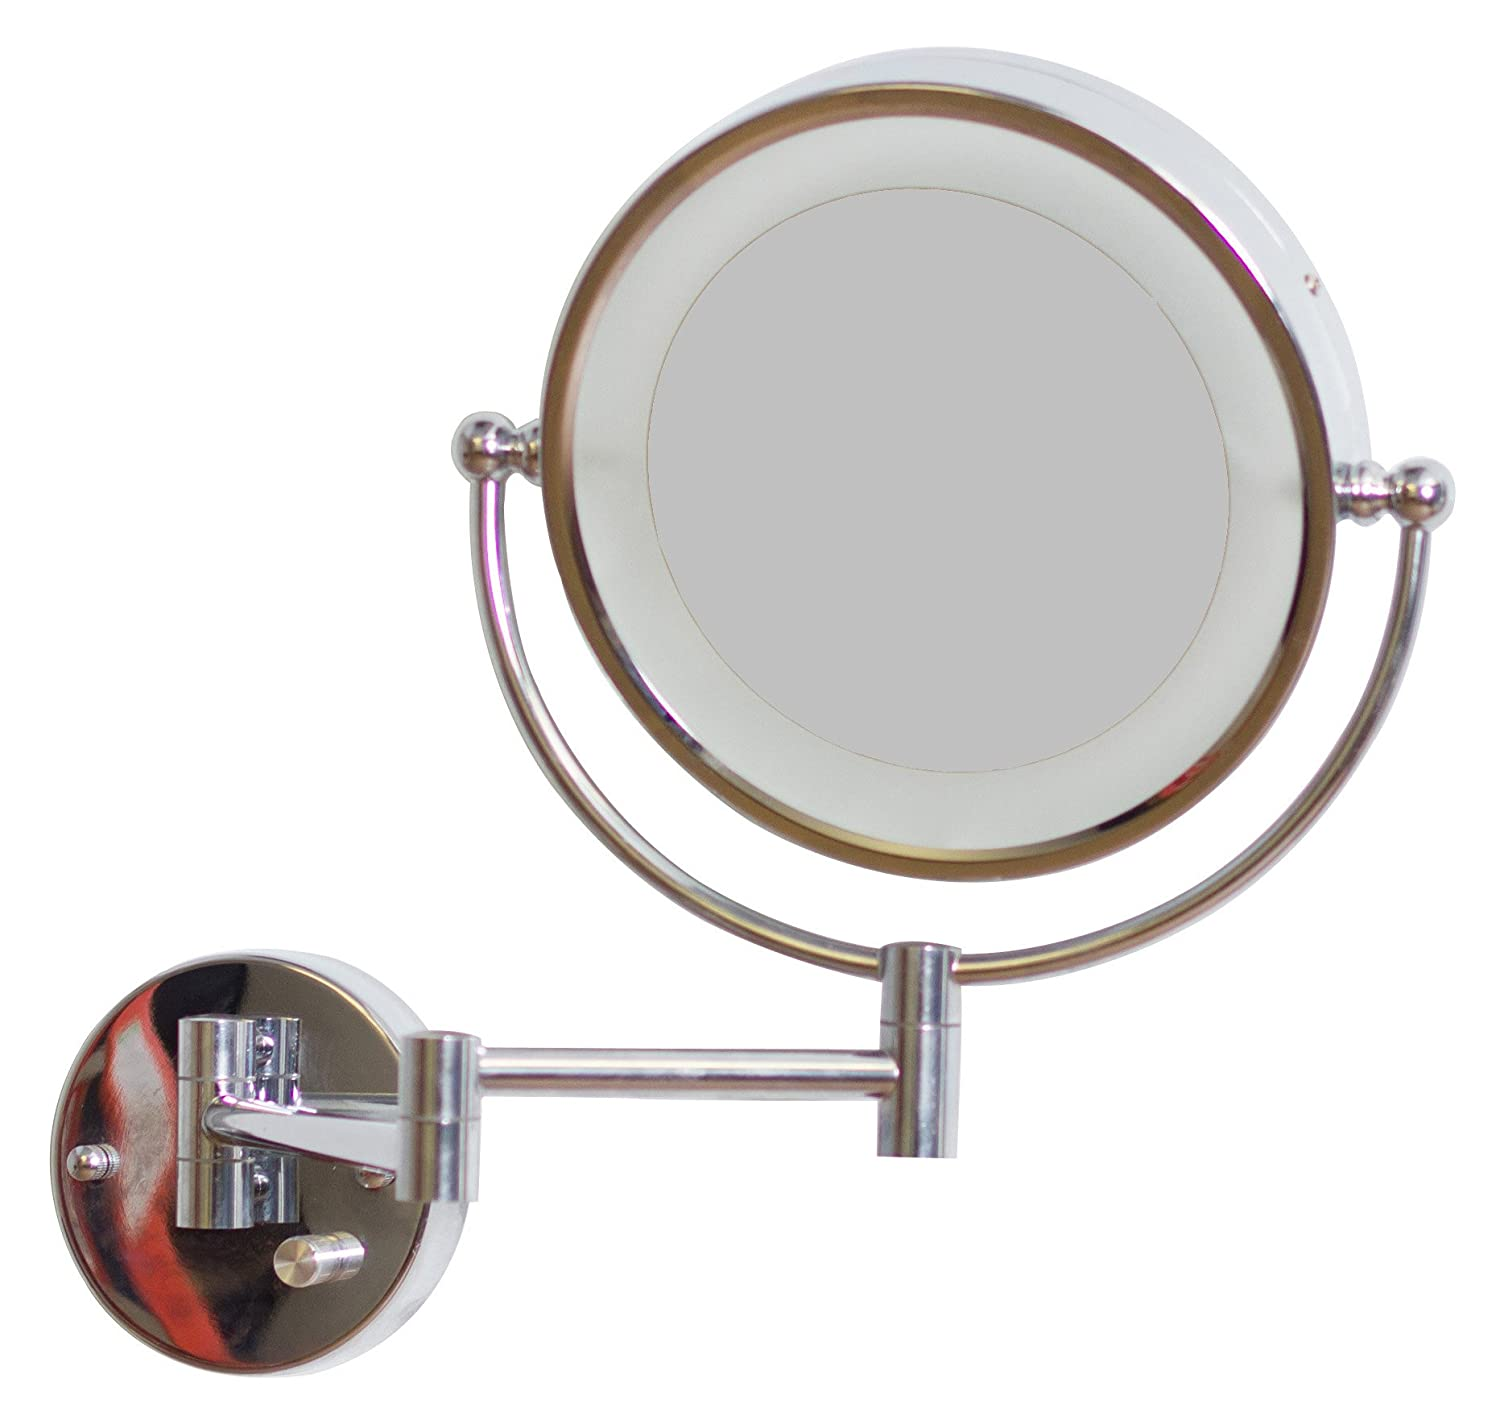 American Imaginations AI-14-557 Round LED Mirror with Light Dimmer and Dual 1x/5x Zoom, 8.5-Inch